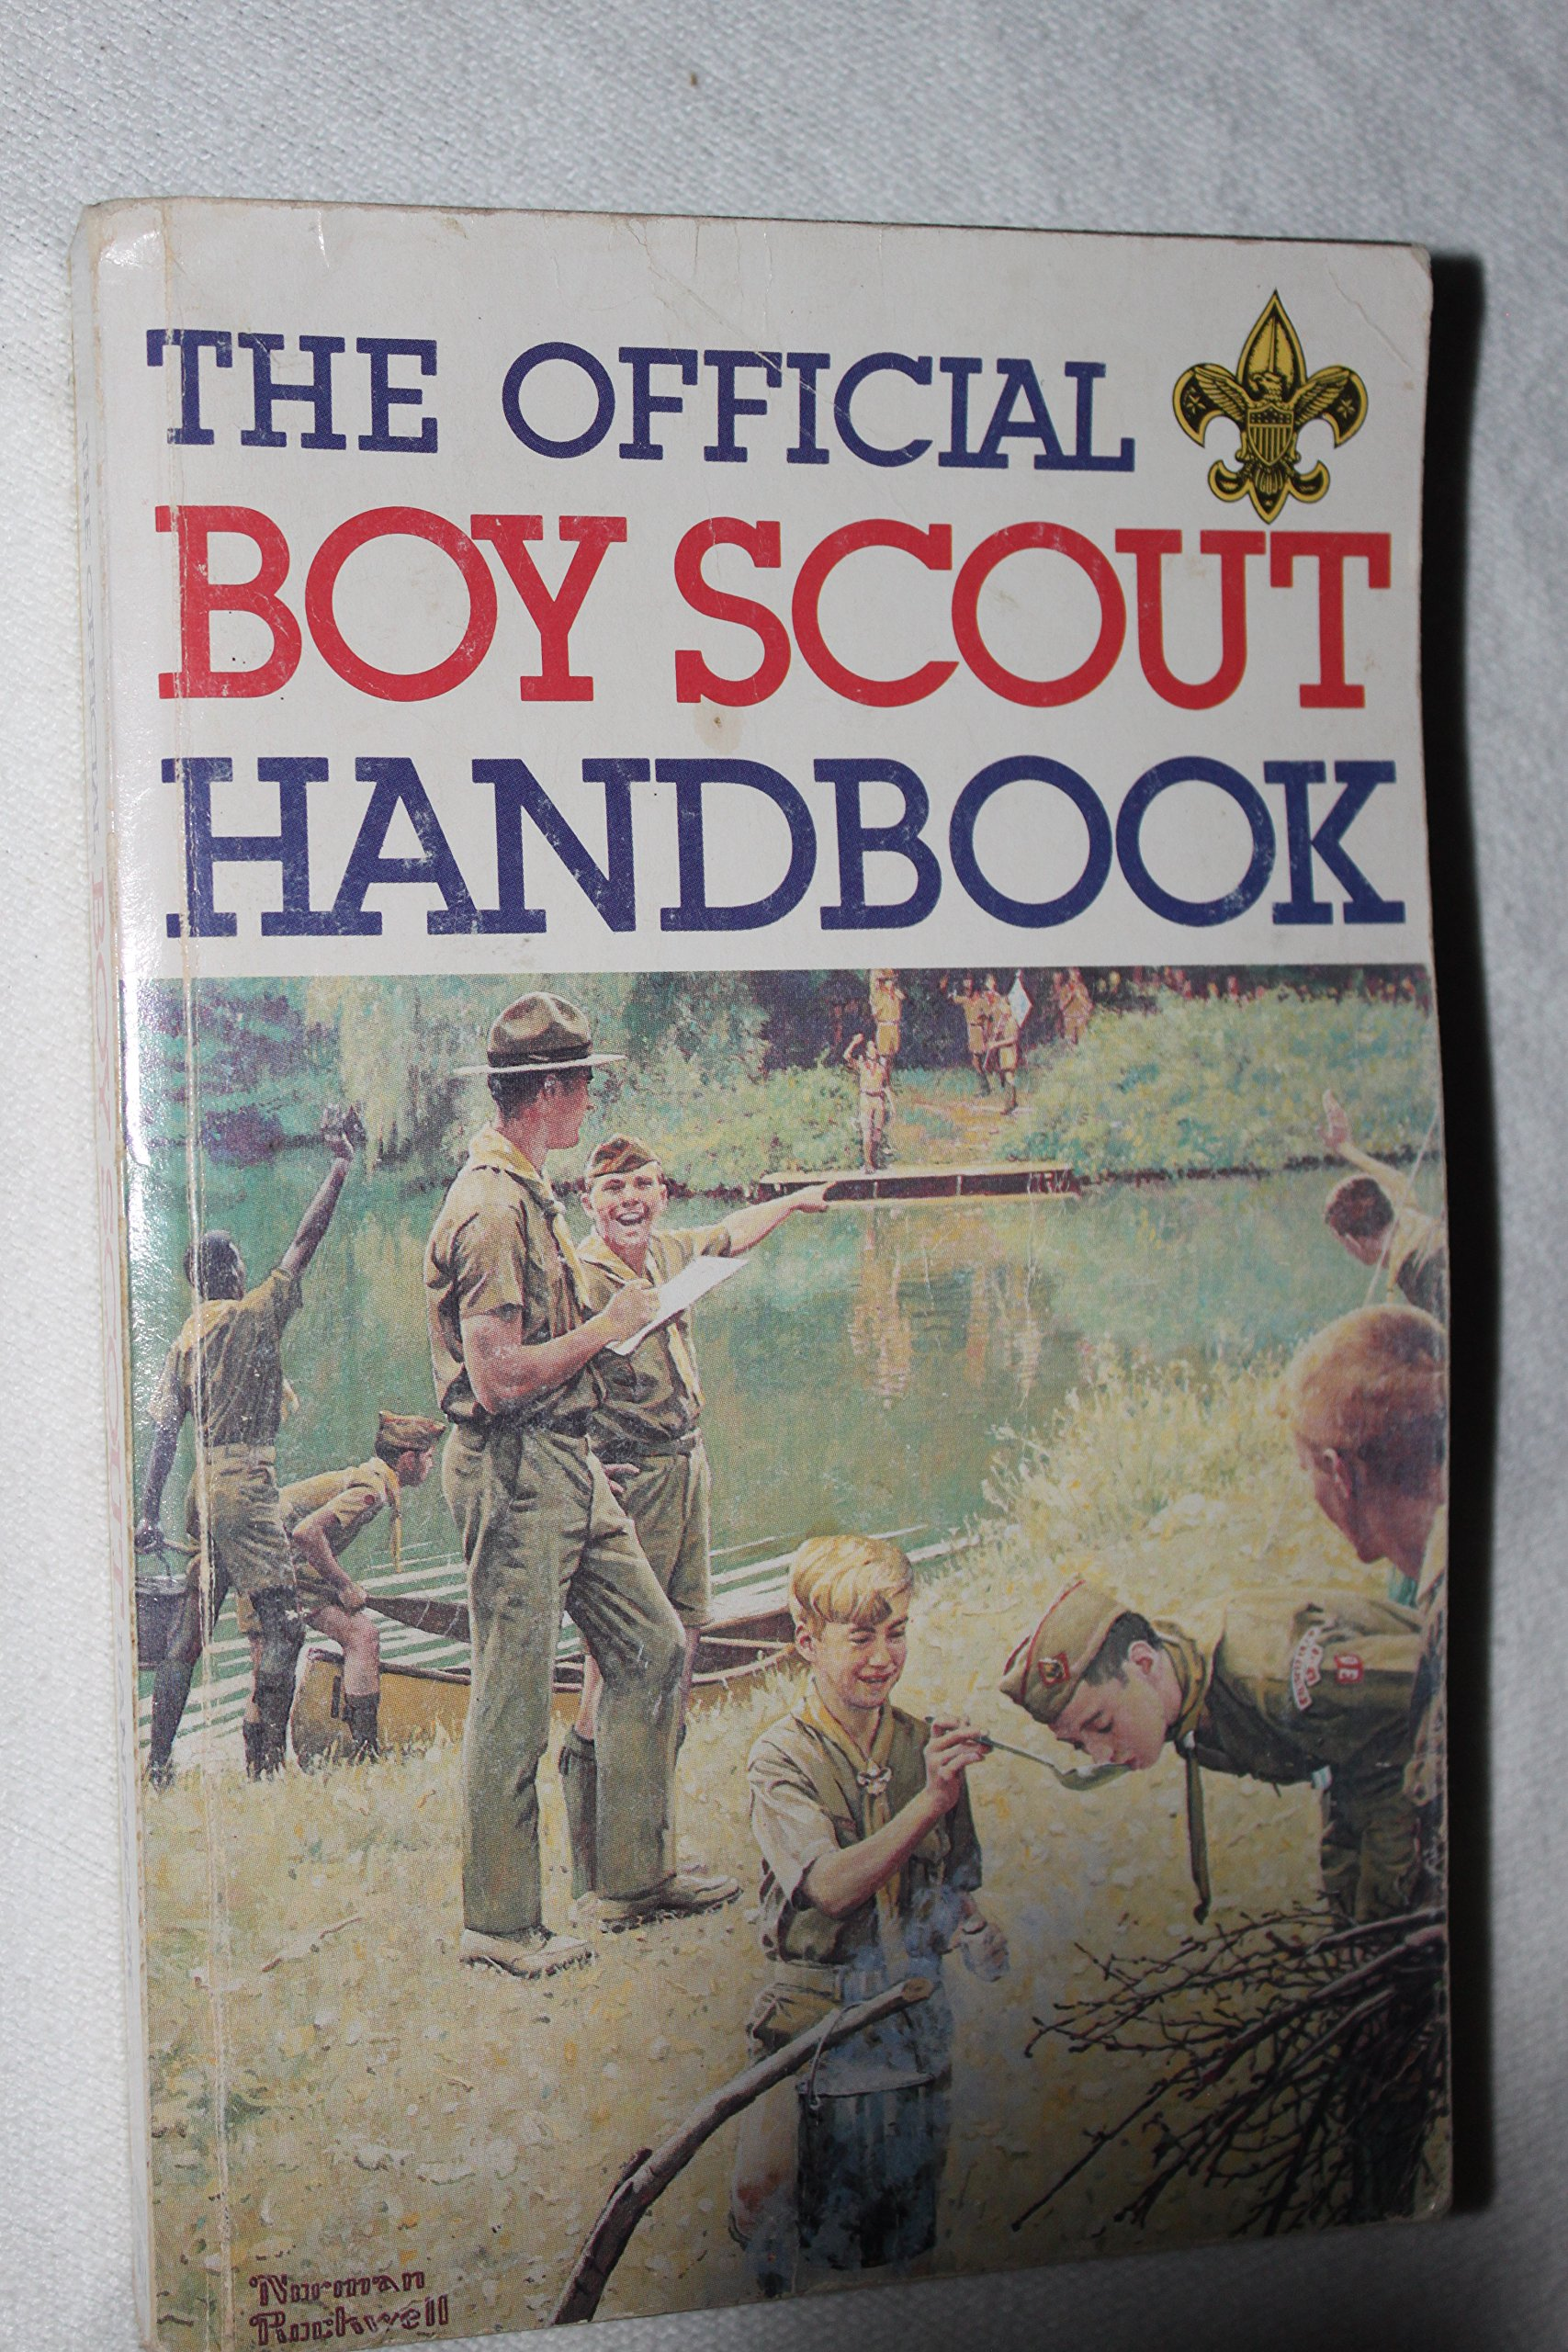 Official boy scout handbook william hillcourt norman rockwell official boy scout handbook william hillcourt norman rockwell 9780839532279 amazon books fandeluxe Choice Image